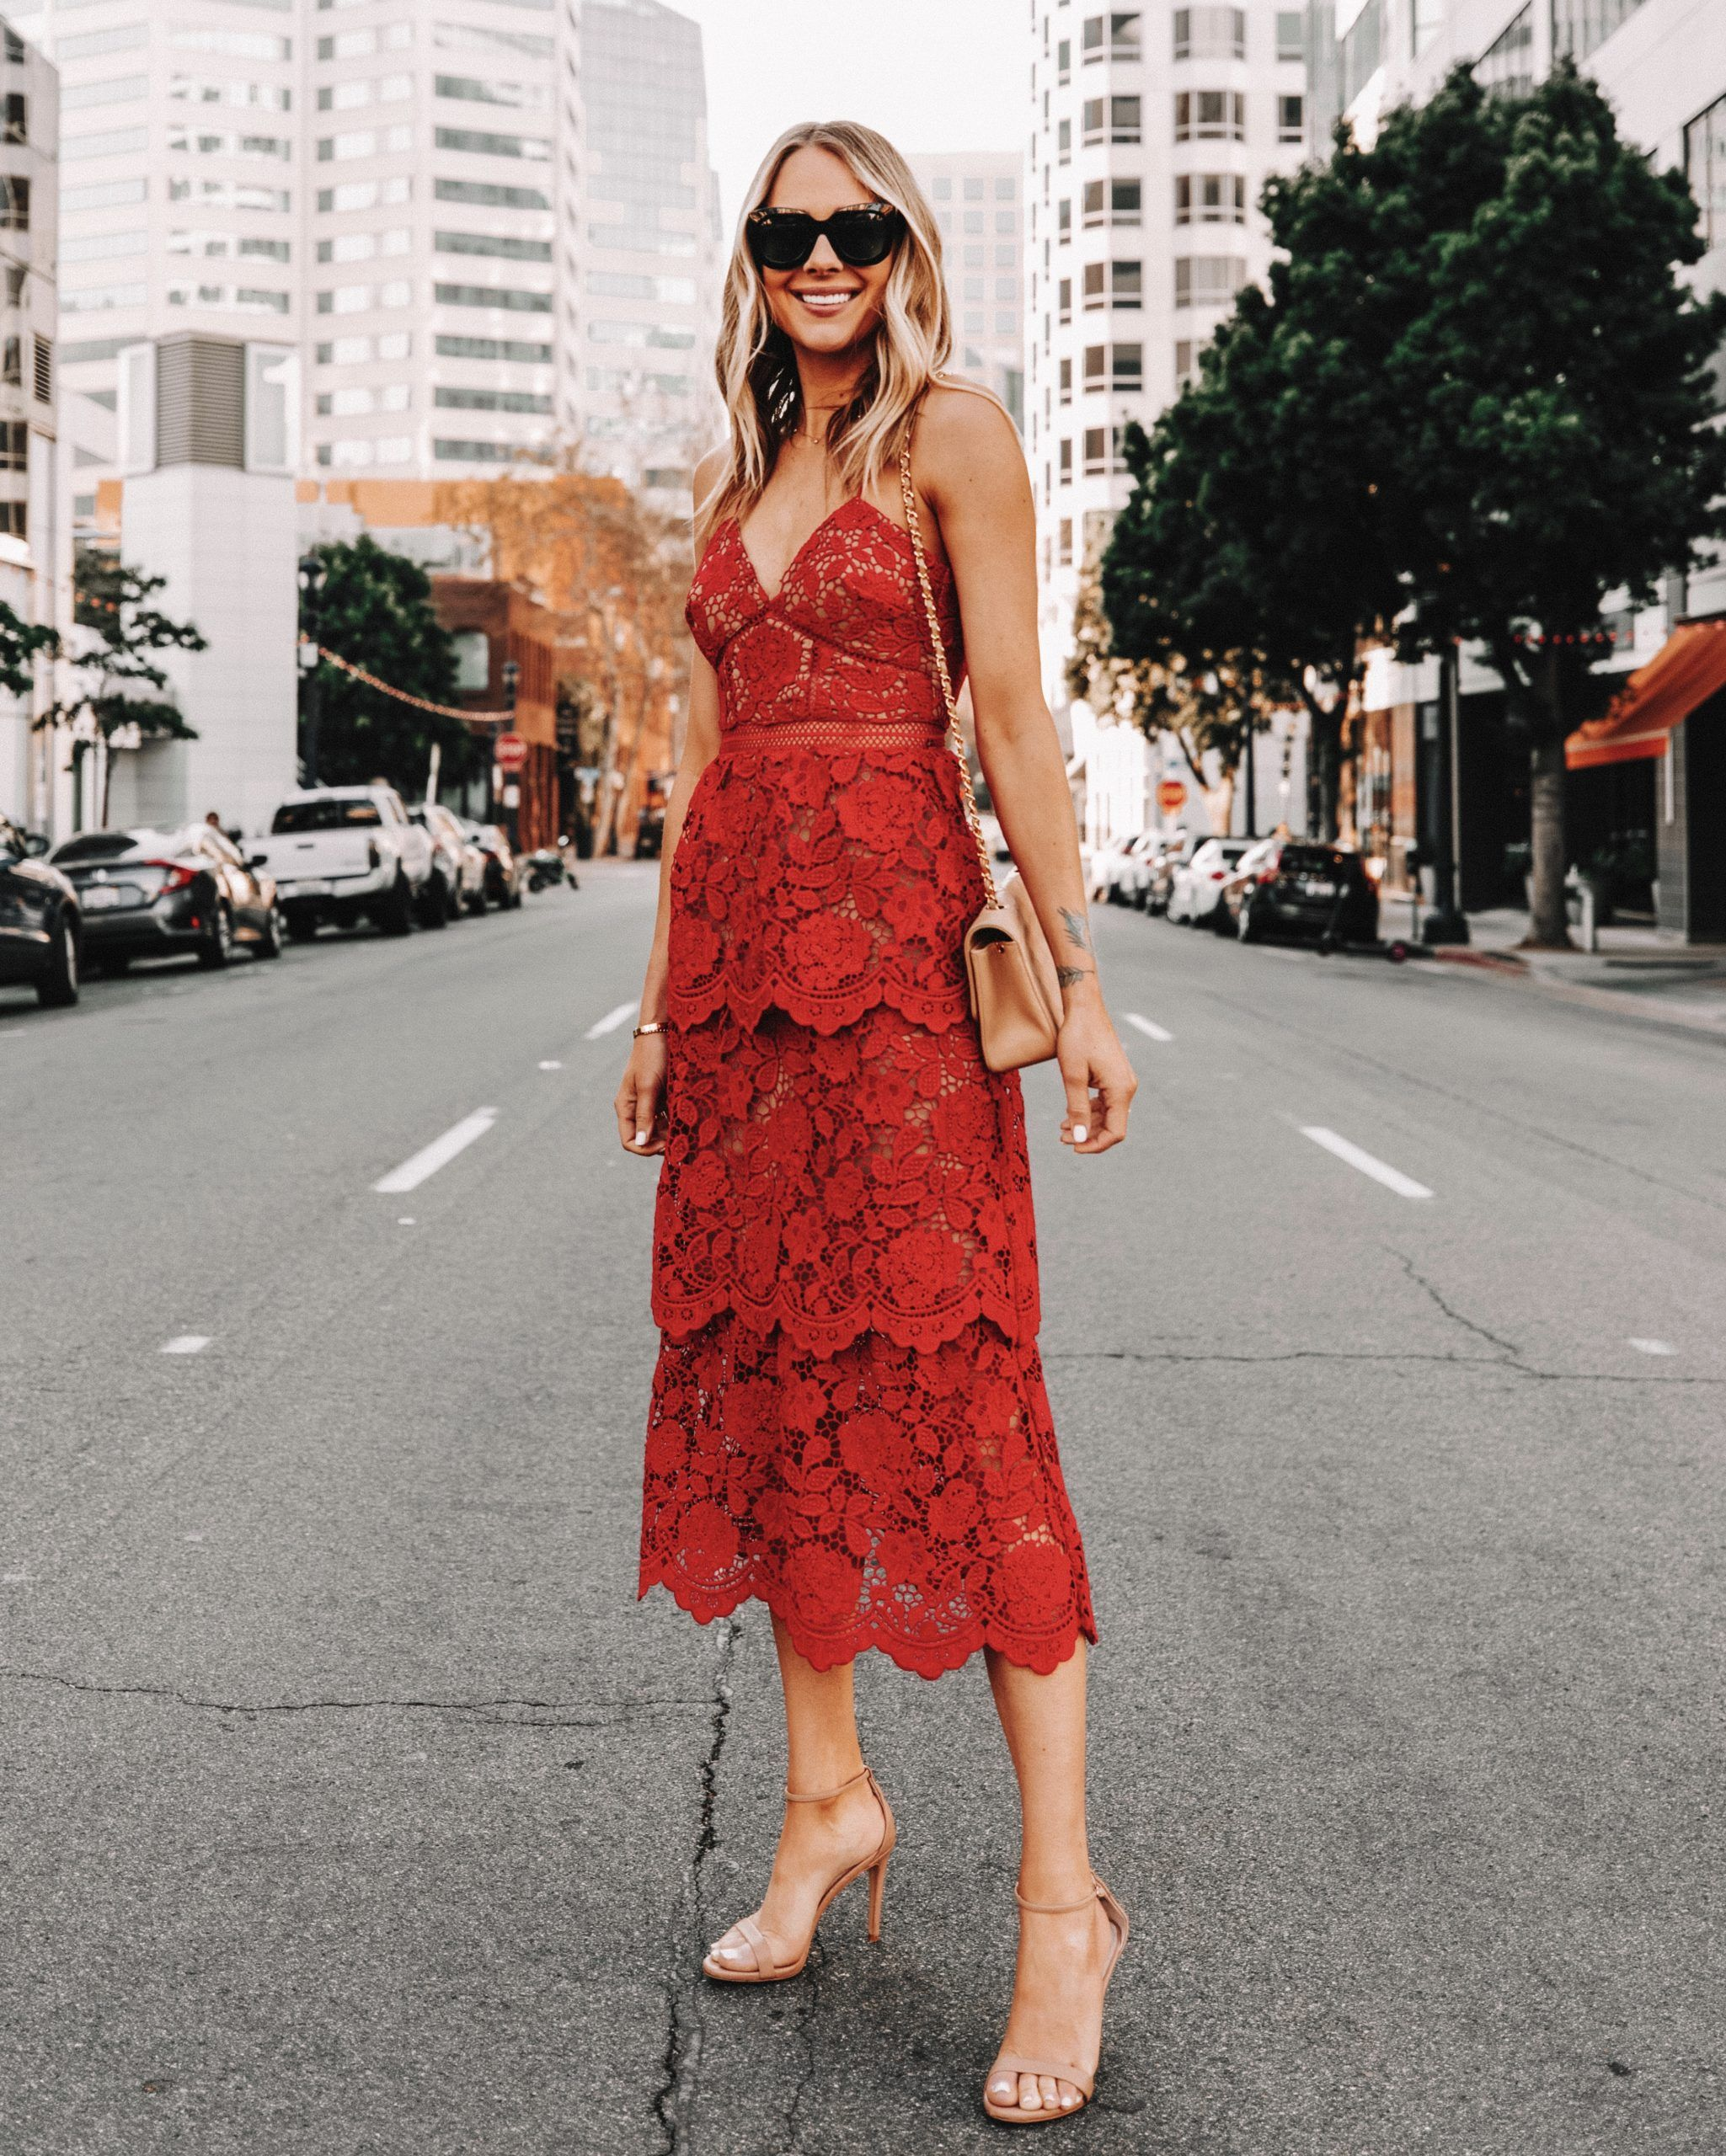 Self Portrait Flower Lace Midi Dress Red Wedding Guest Dress Spring Wedding In 2020 Cocktail Dress Wedding Guest Cocktail Dress Wedding Dresses To Wear To A Wedding